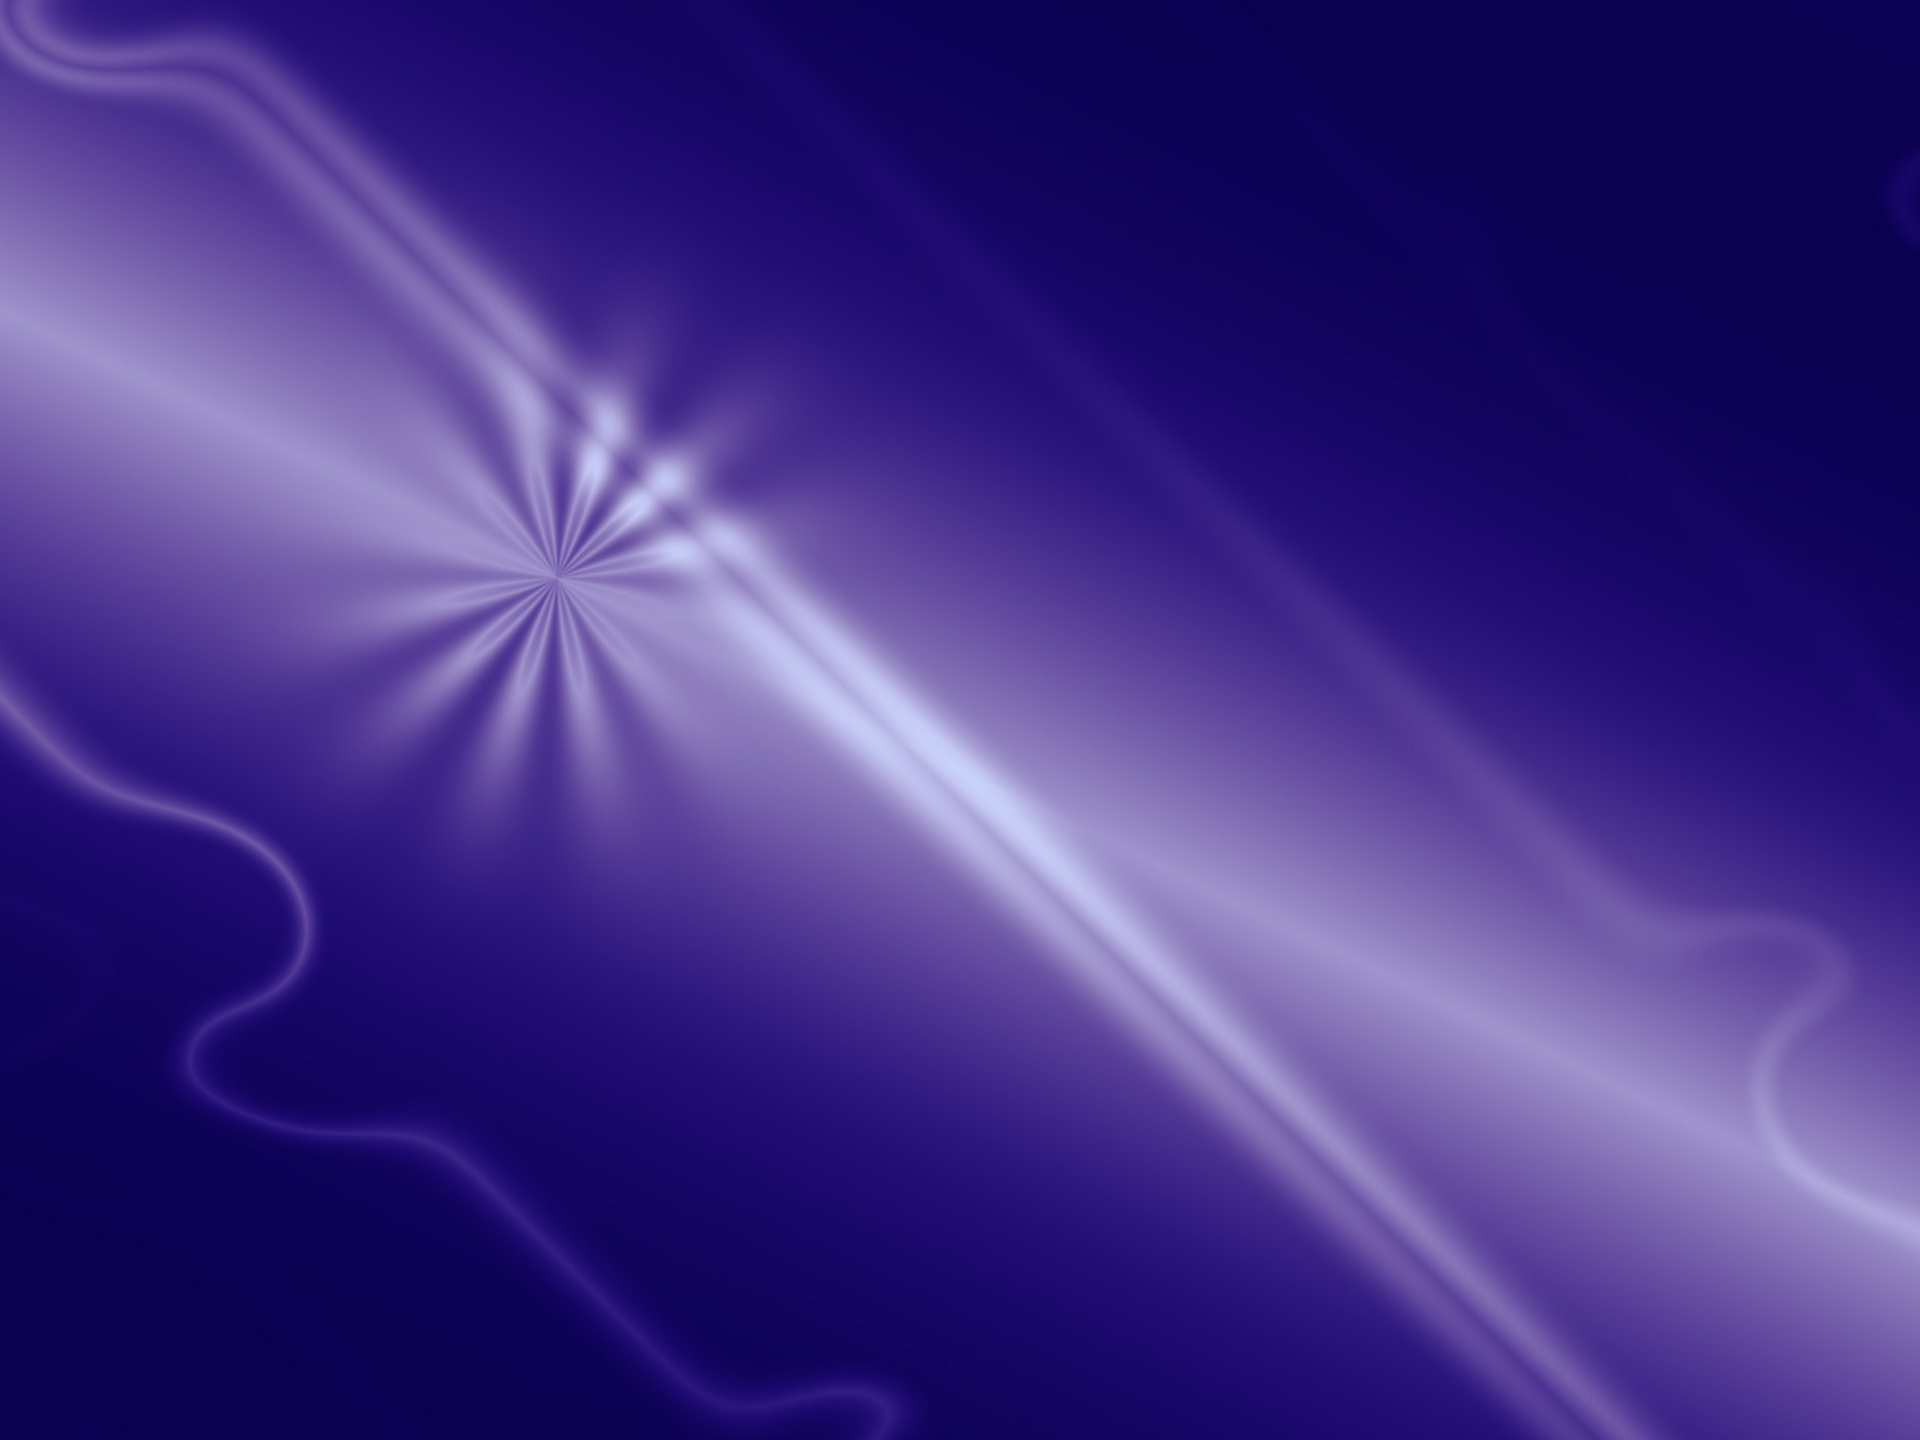 Abstract purple lights backgrounds